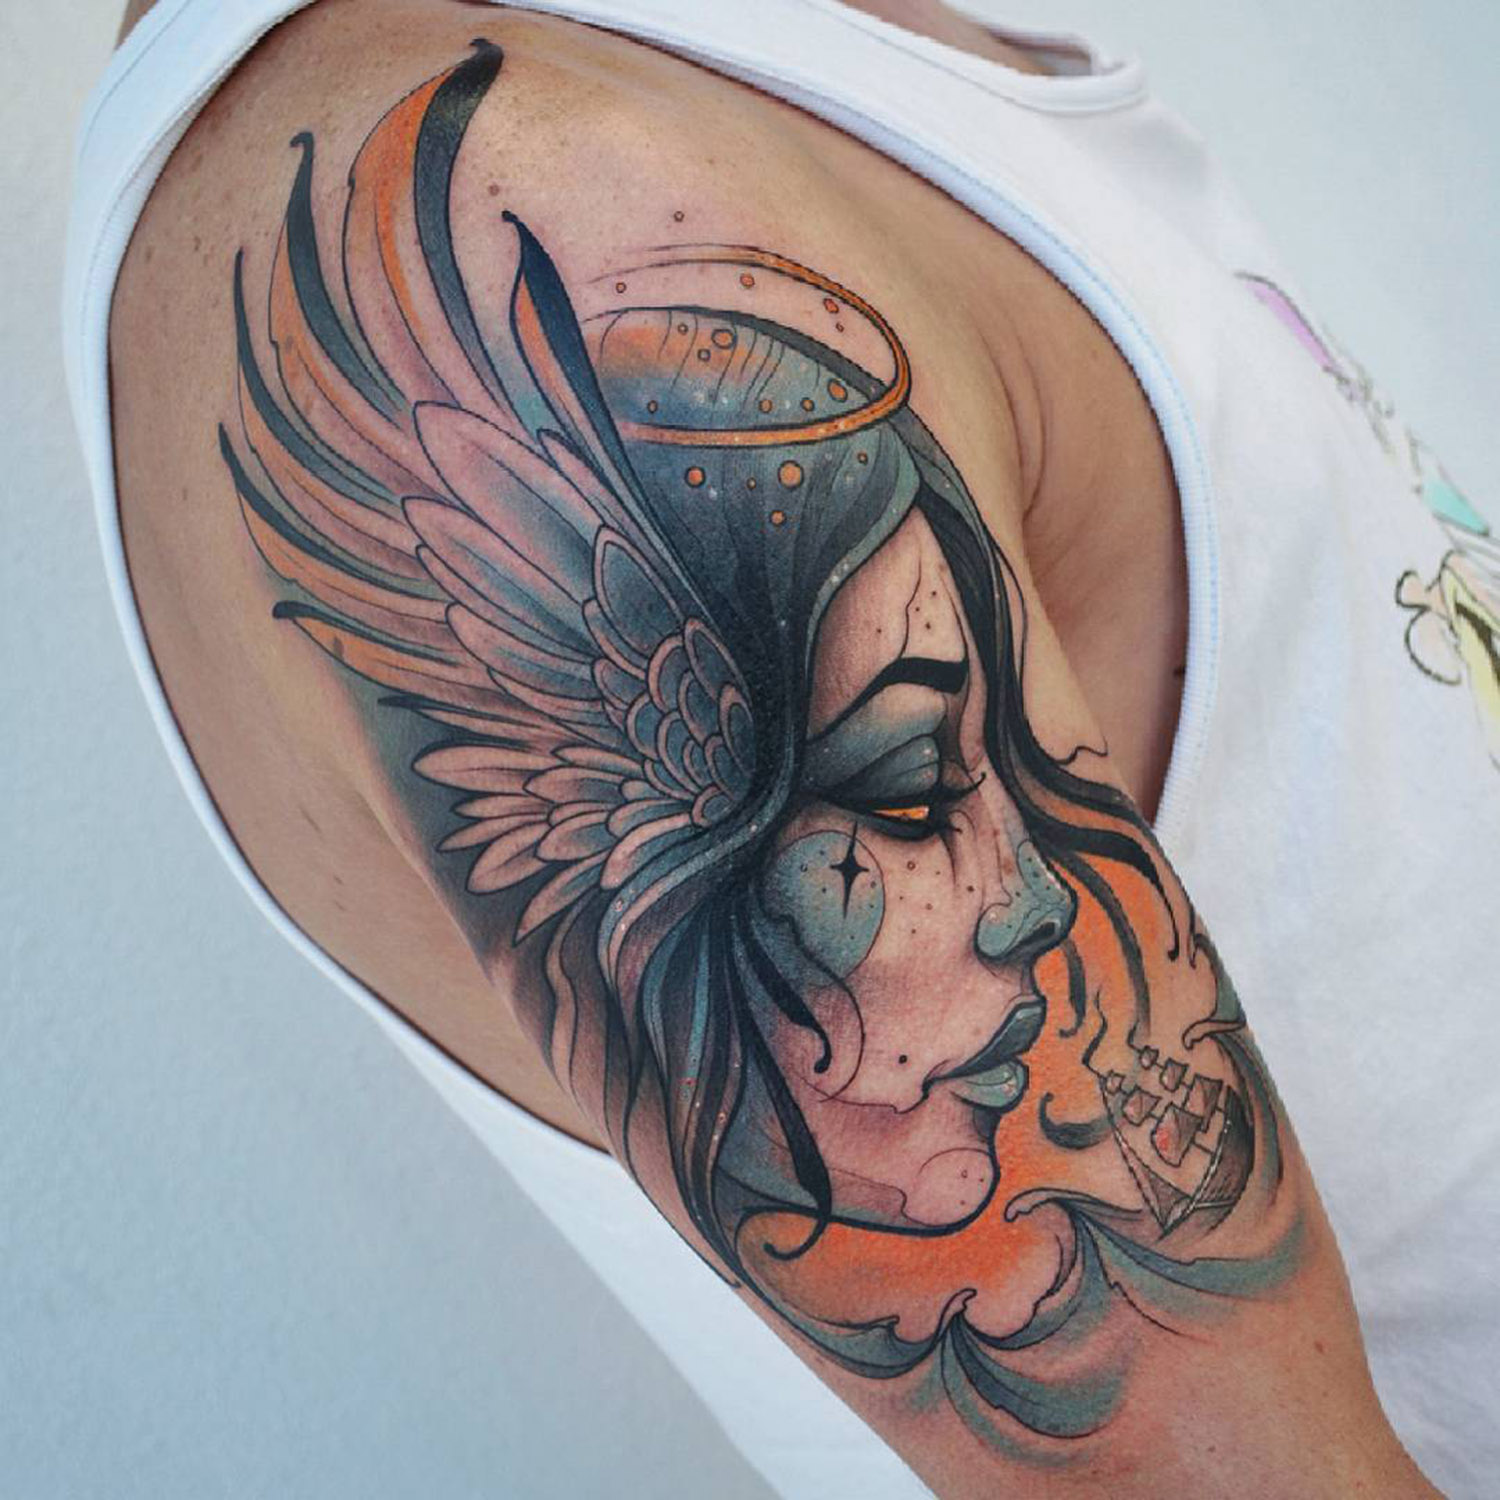 Tattooed portrait of a woman by Kati Berinkey